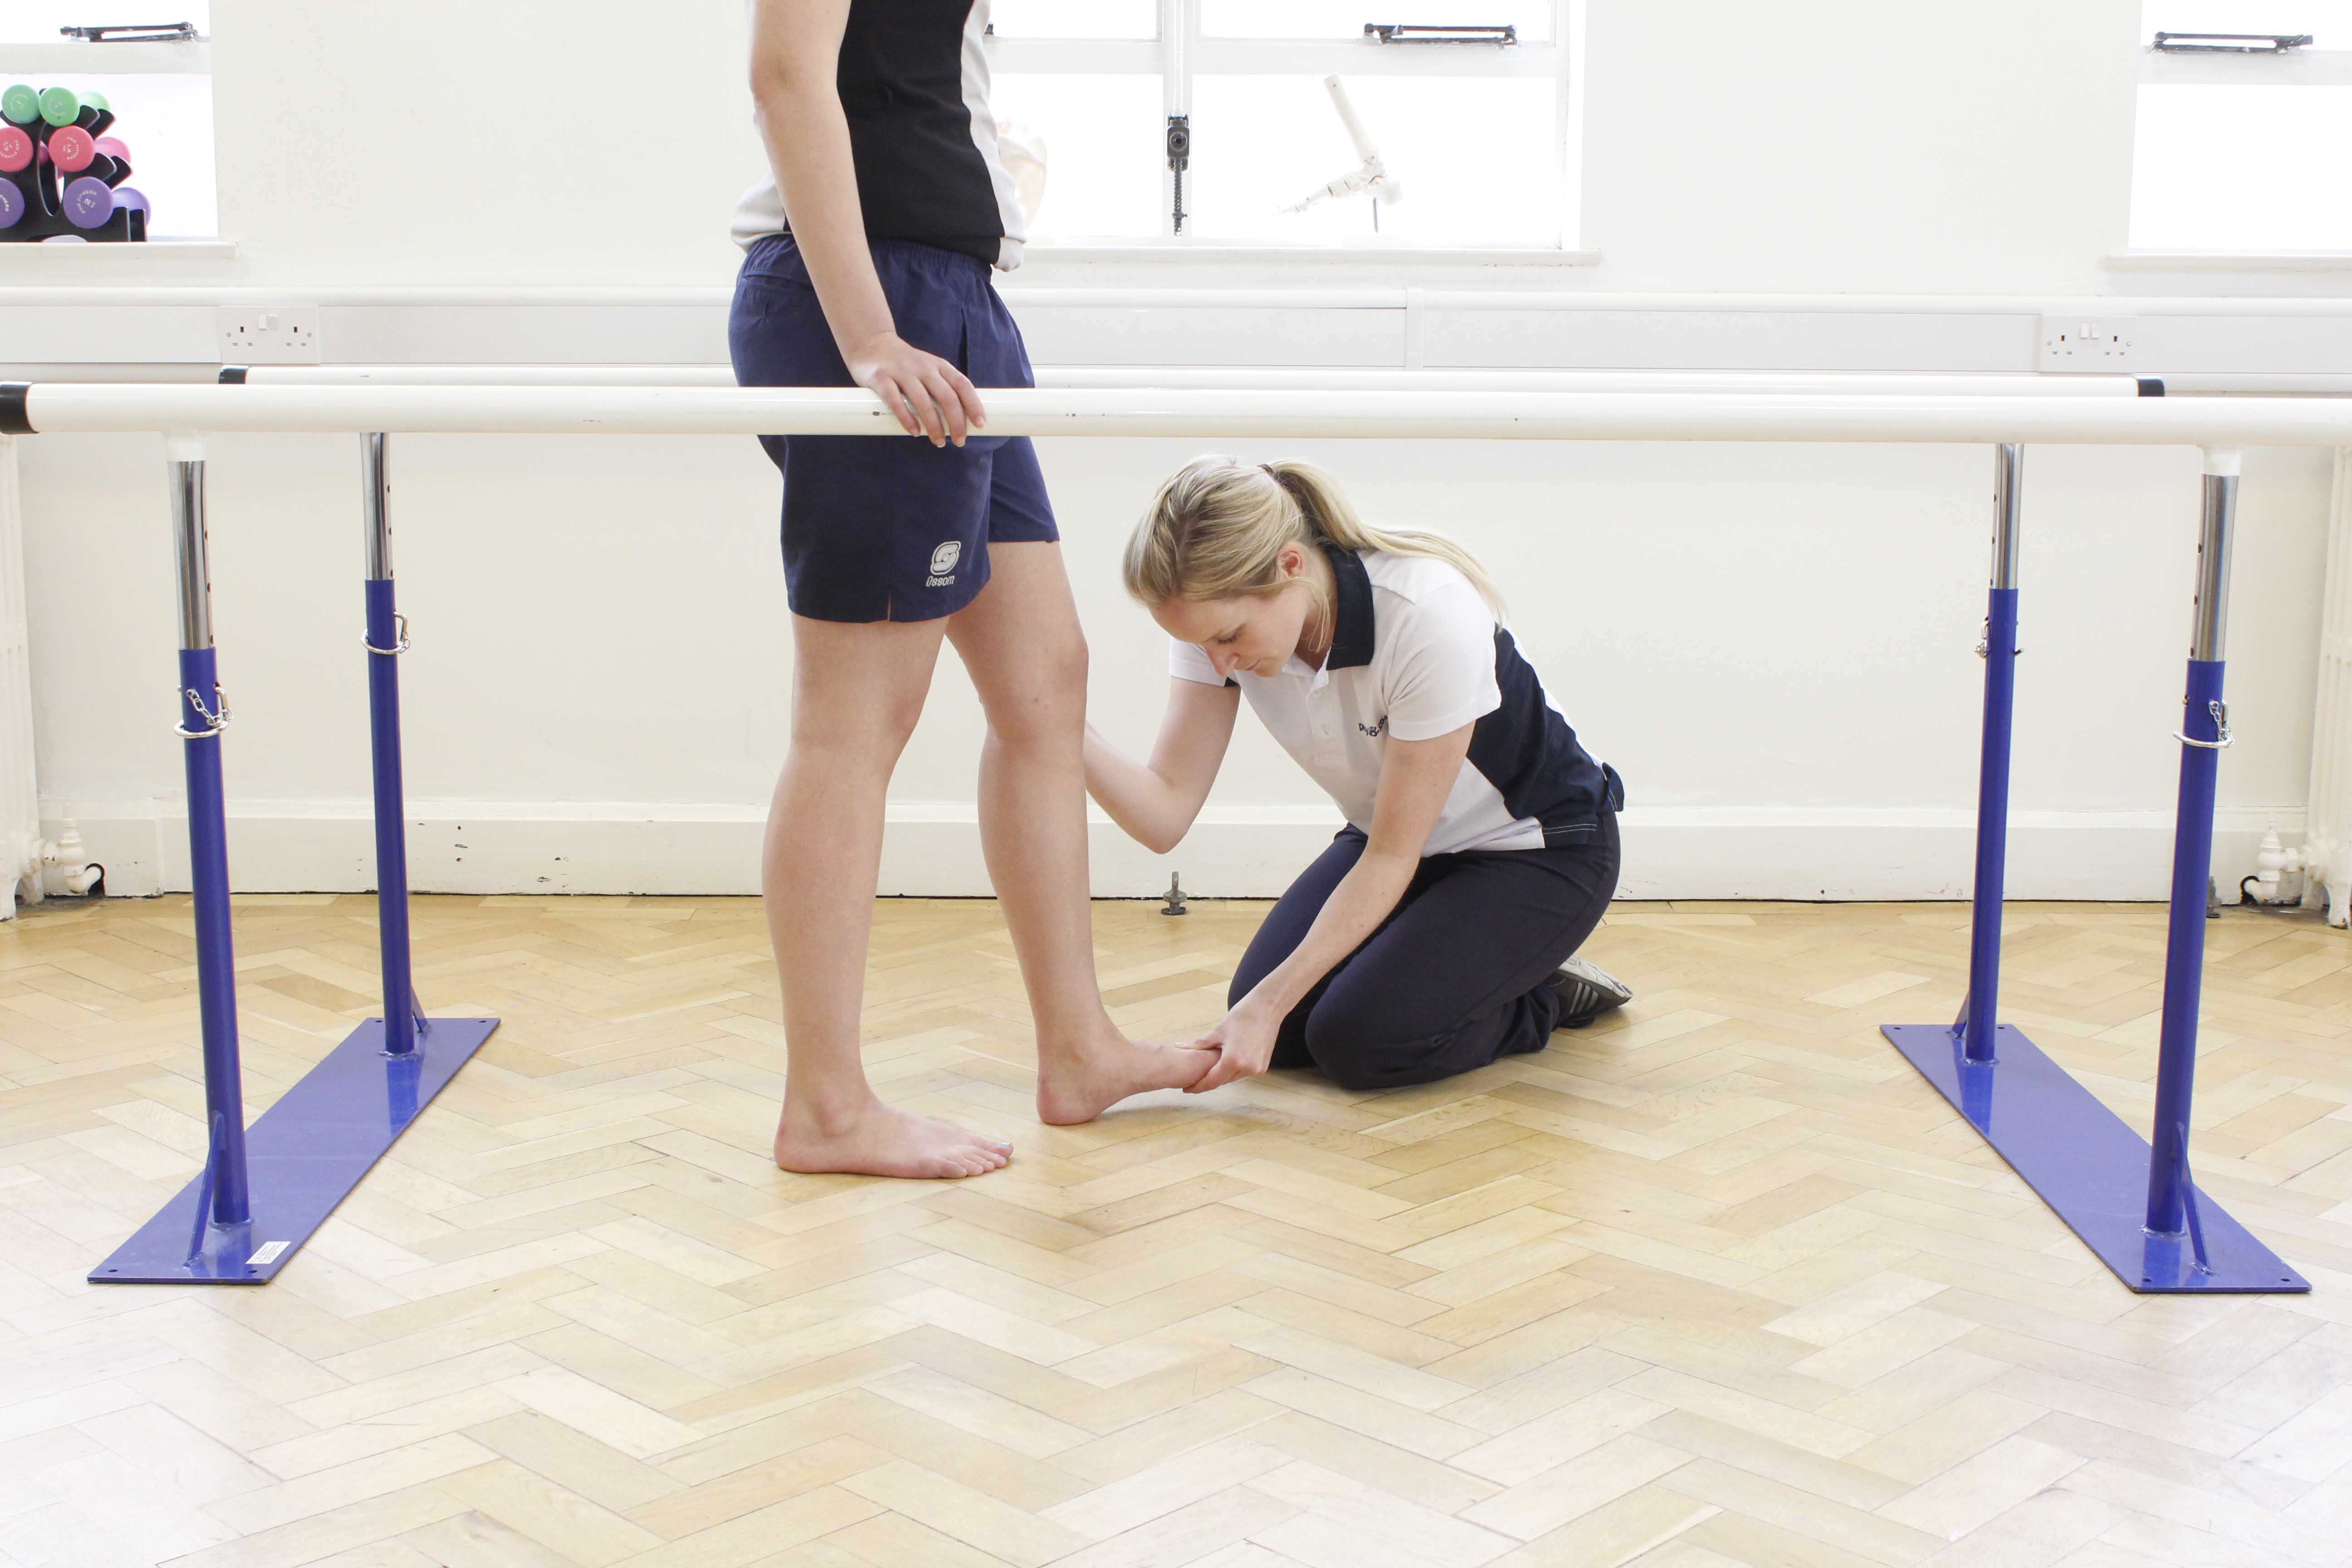 Straight leg raises performed uder the supervision of a apecialist neuological physiotherapist